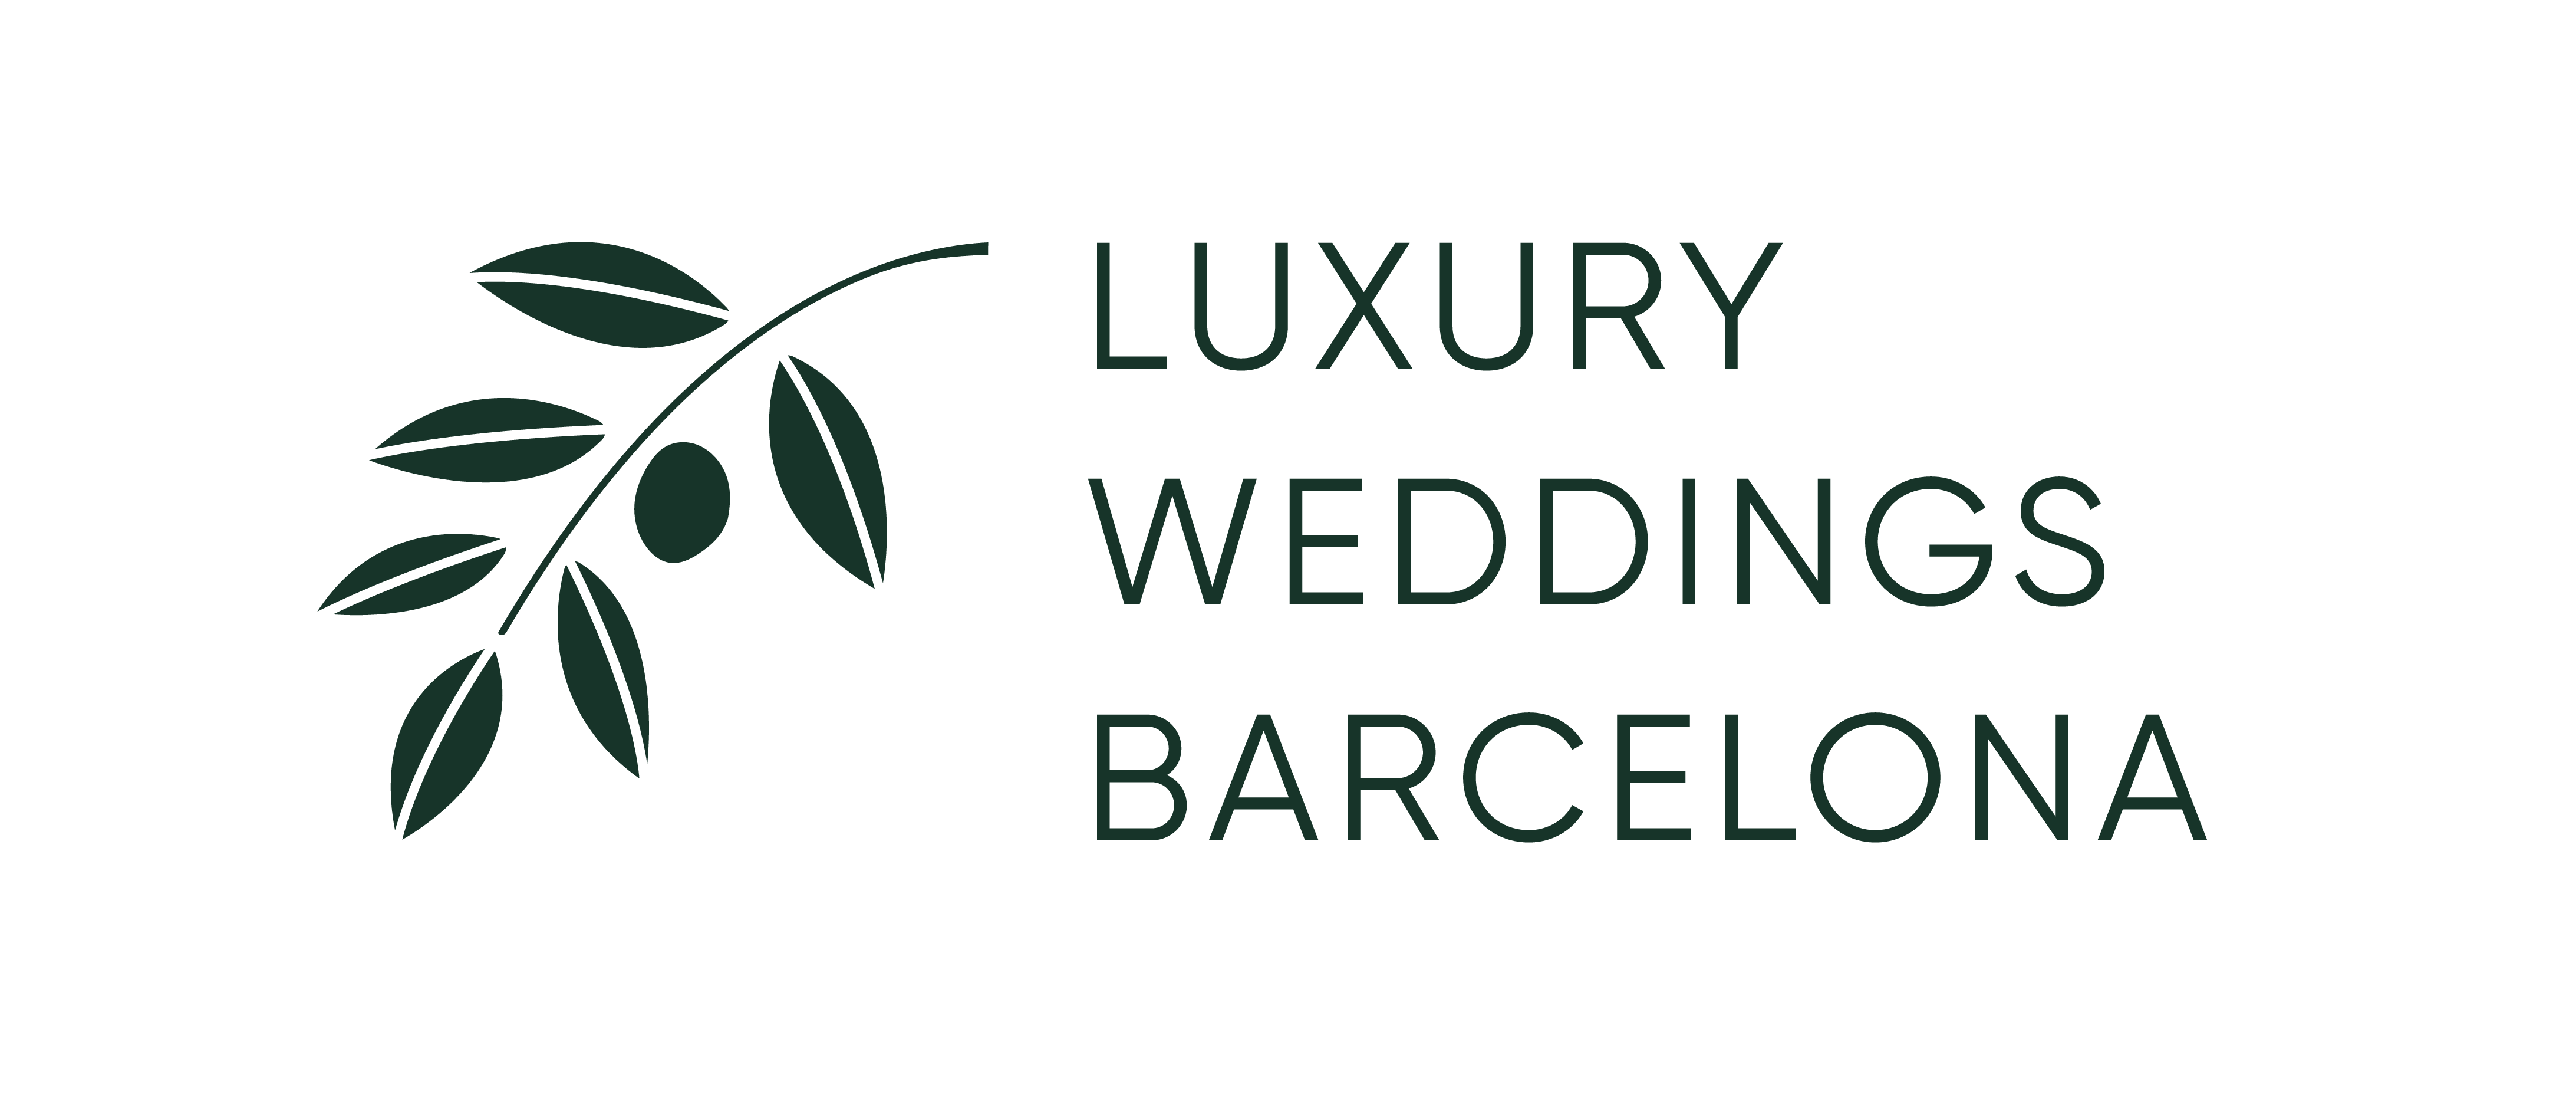 Luxury Weddings Barcelona